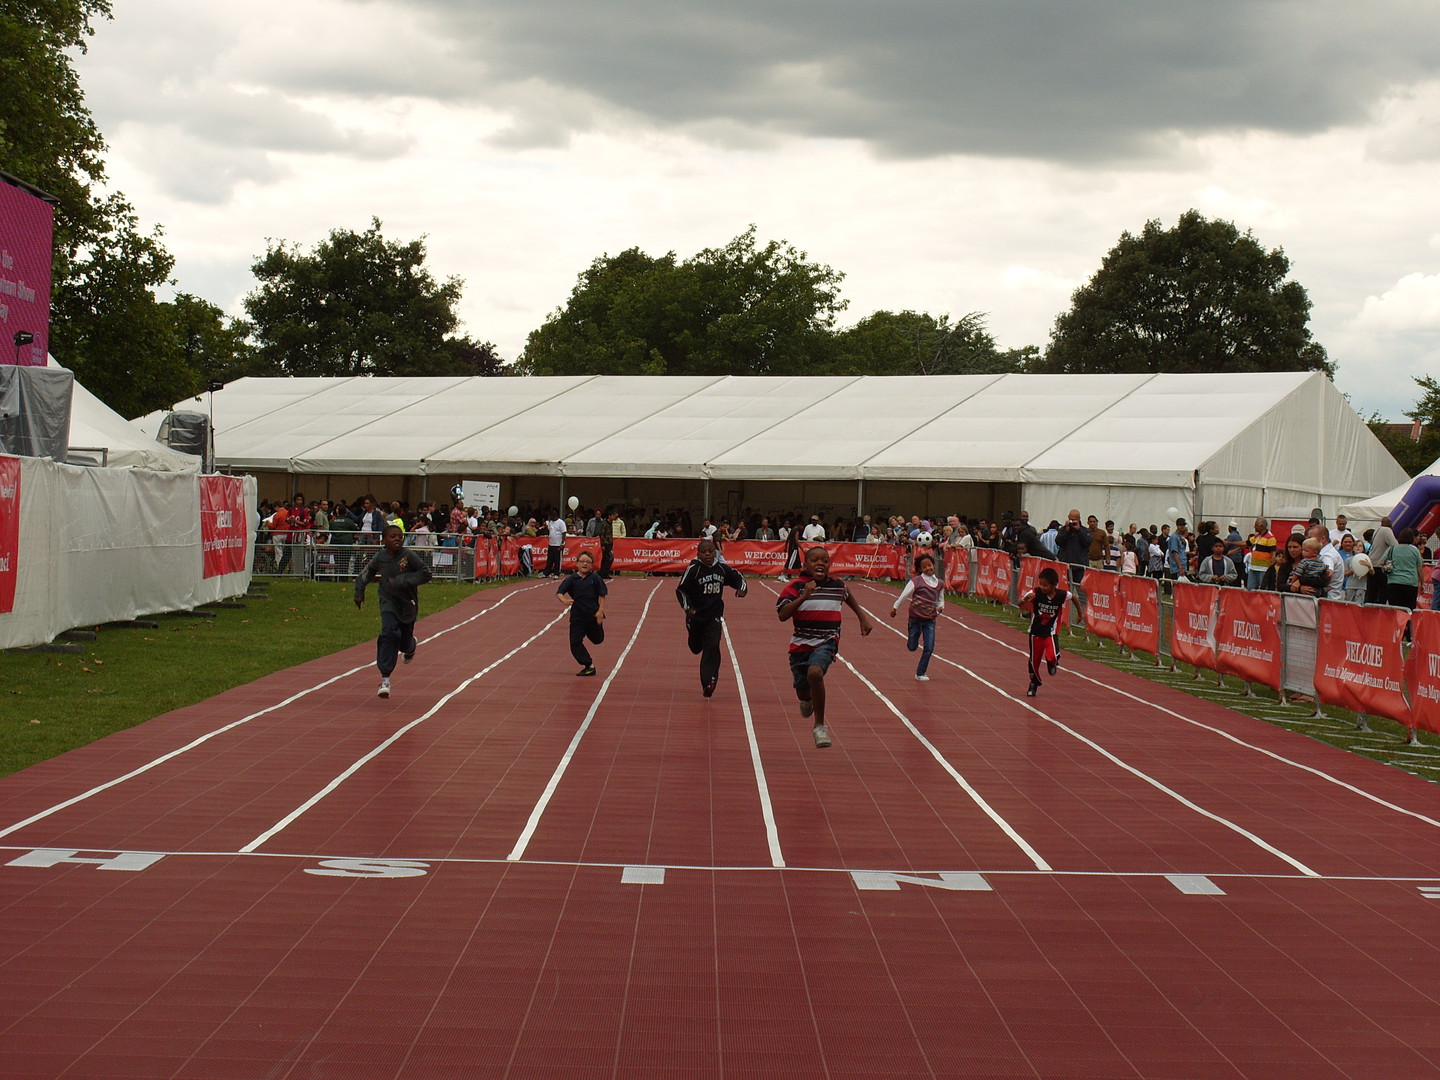 Children Race At the Newham Town Show in 2007